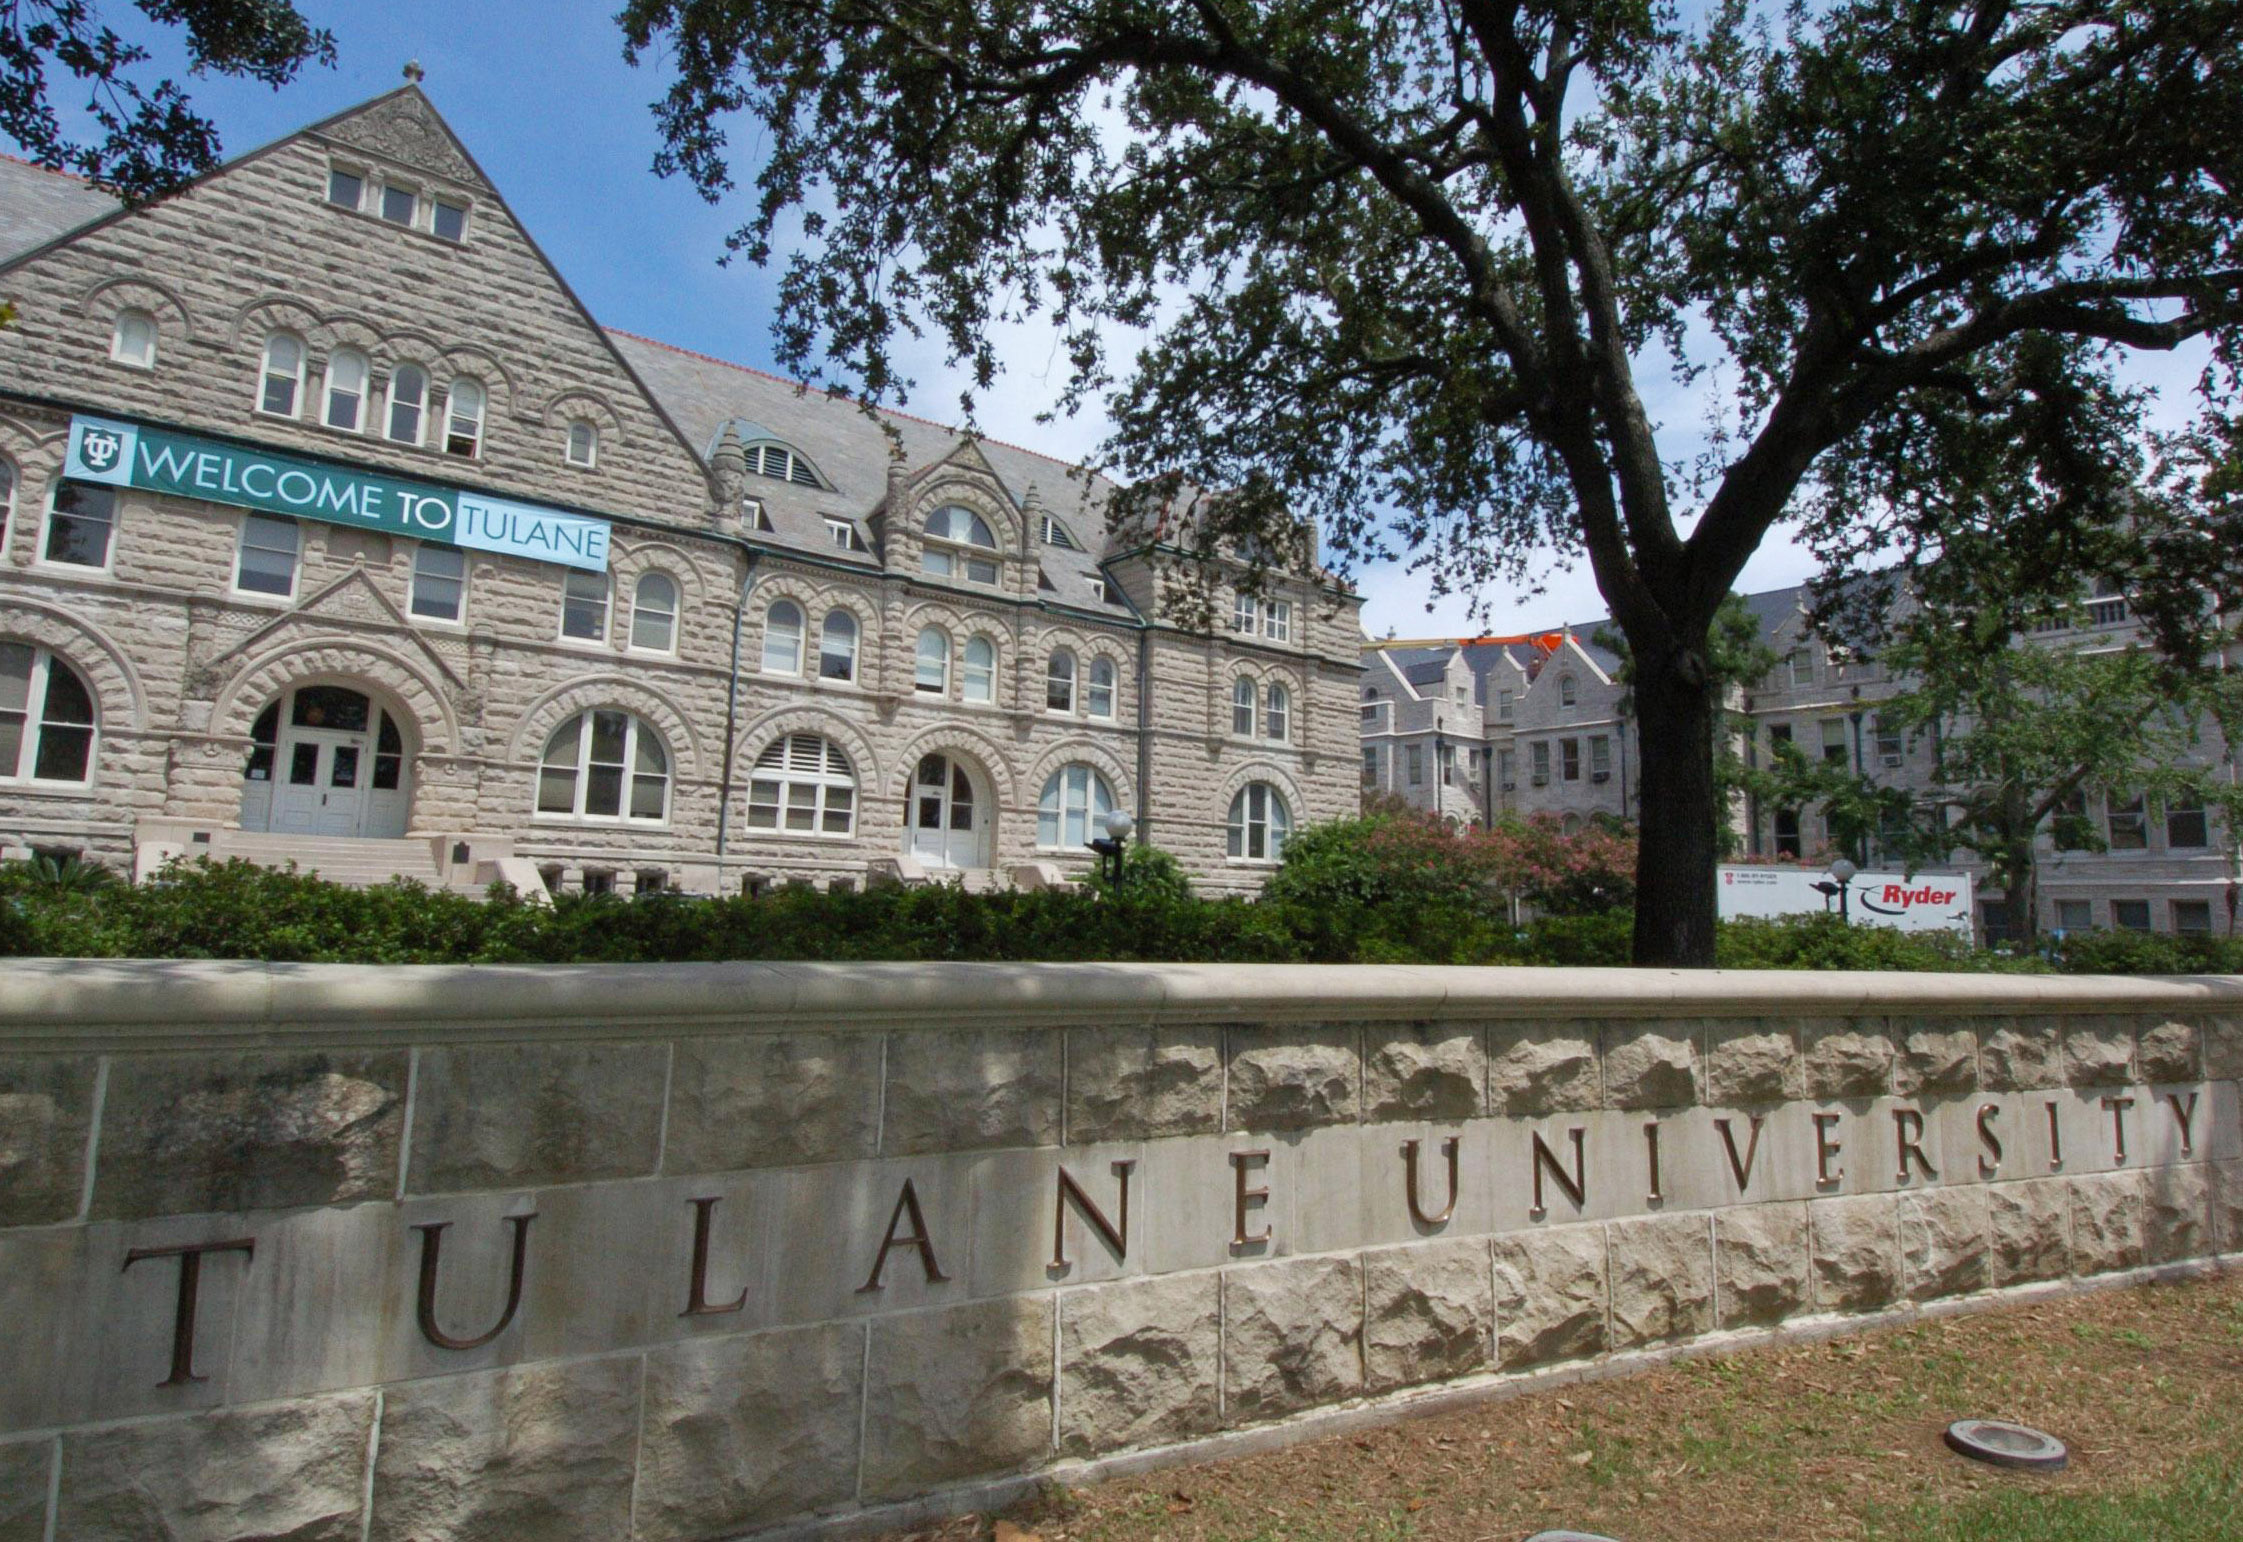 Tulane students warned of suspension or expulsion for partying in groups larger than 15